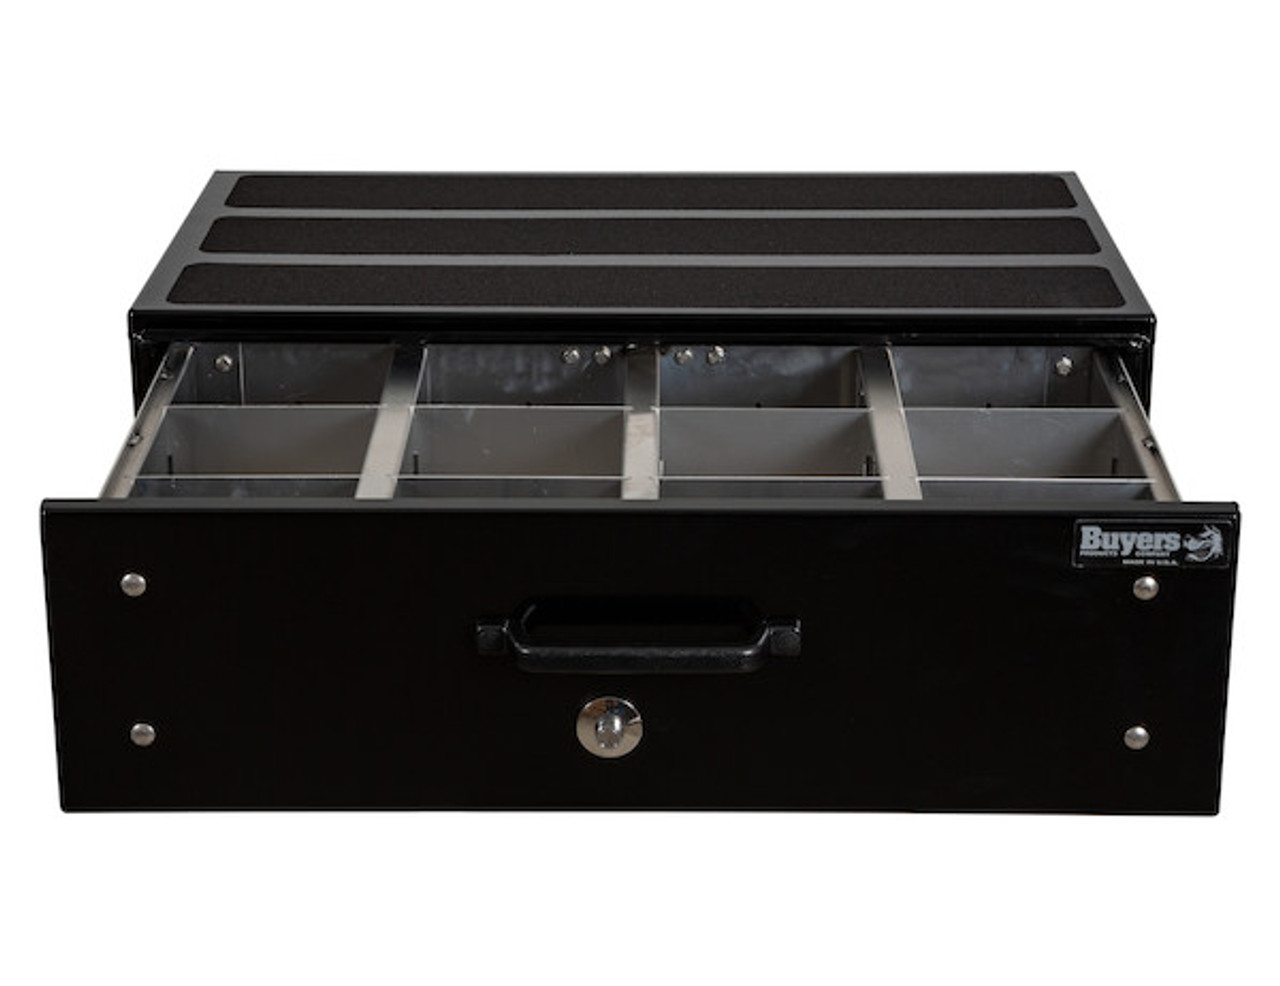 "1718320 BUYERS SMOOTH BLACK ALUMINUM SLIDE OUT TRUCK BED TOOLBOX 12""Hx24""Dx40""W"